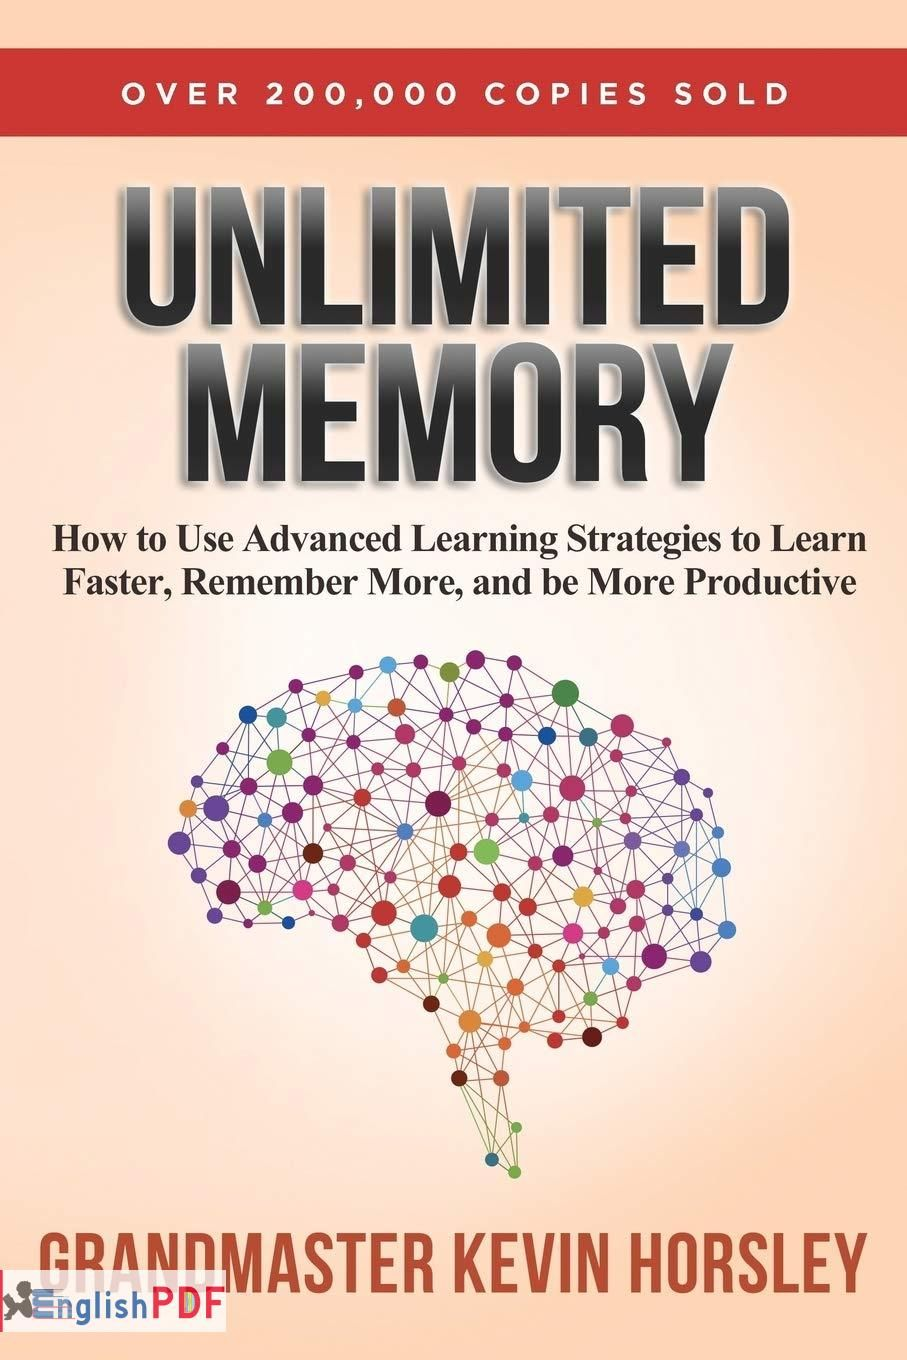 Unlimited Memory Kevin Horsley Pdf Free